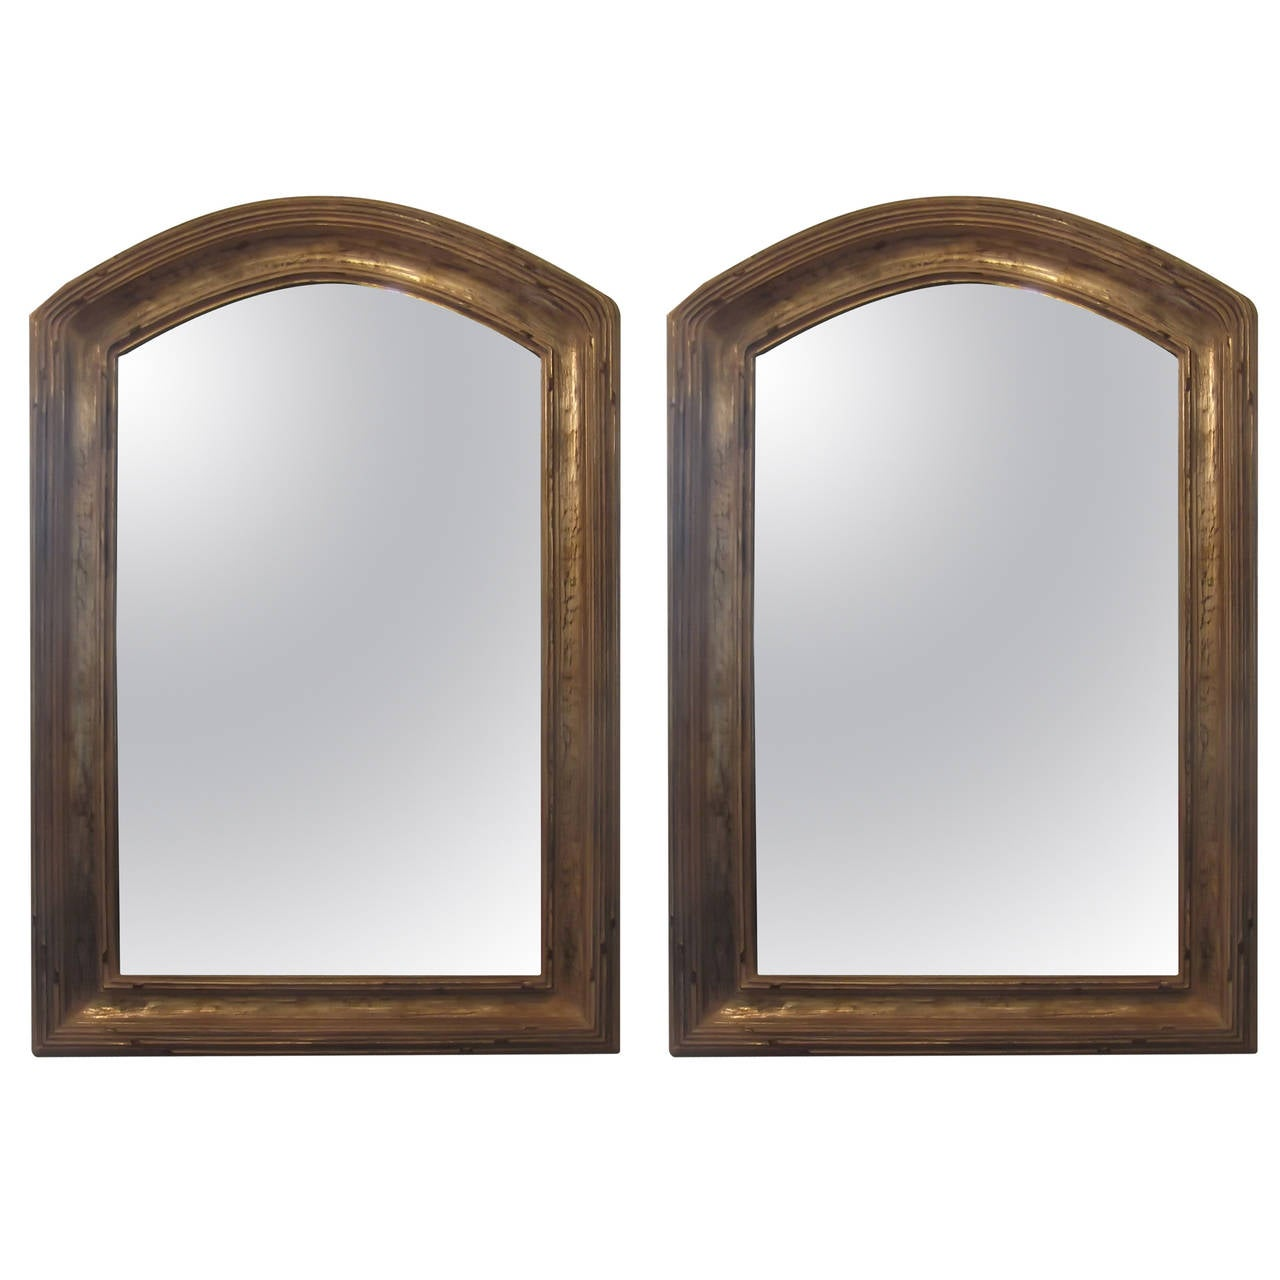 Arched gilt mirror at 1stdibs - Pair Of Giltwood Arched Top Mirrors 1